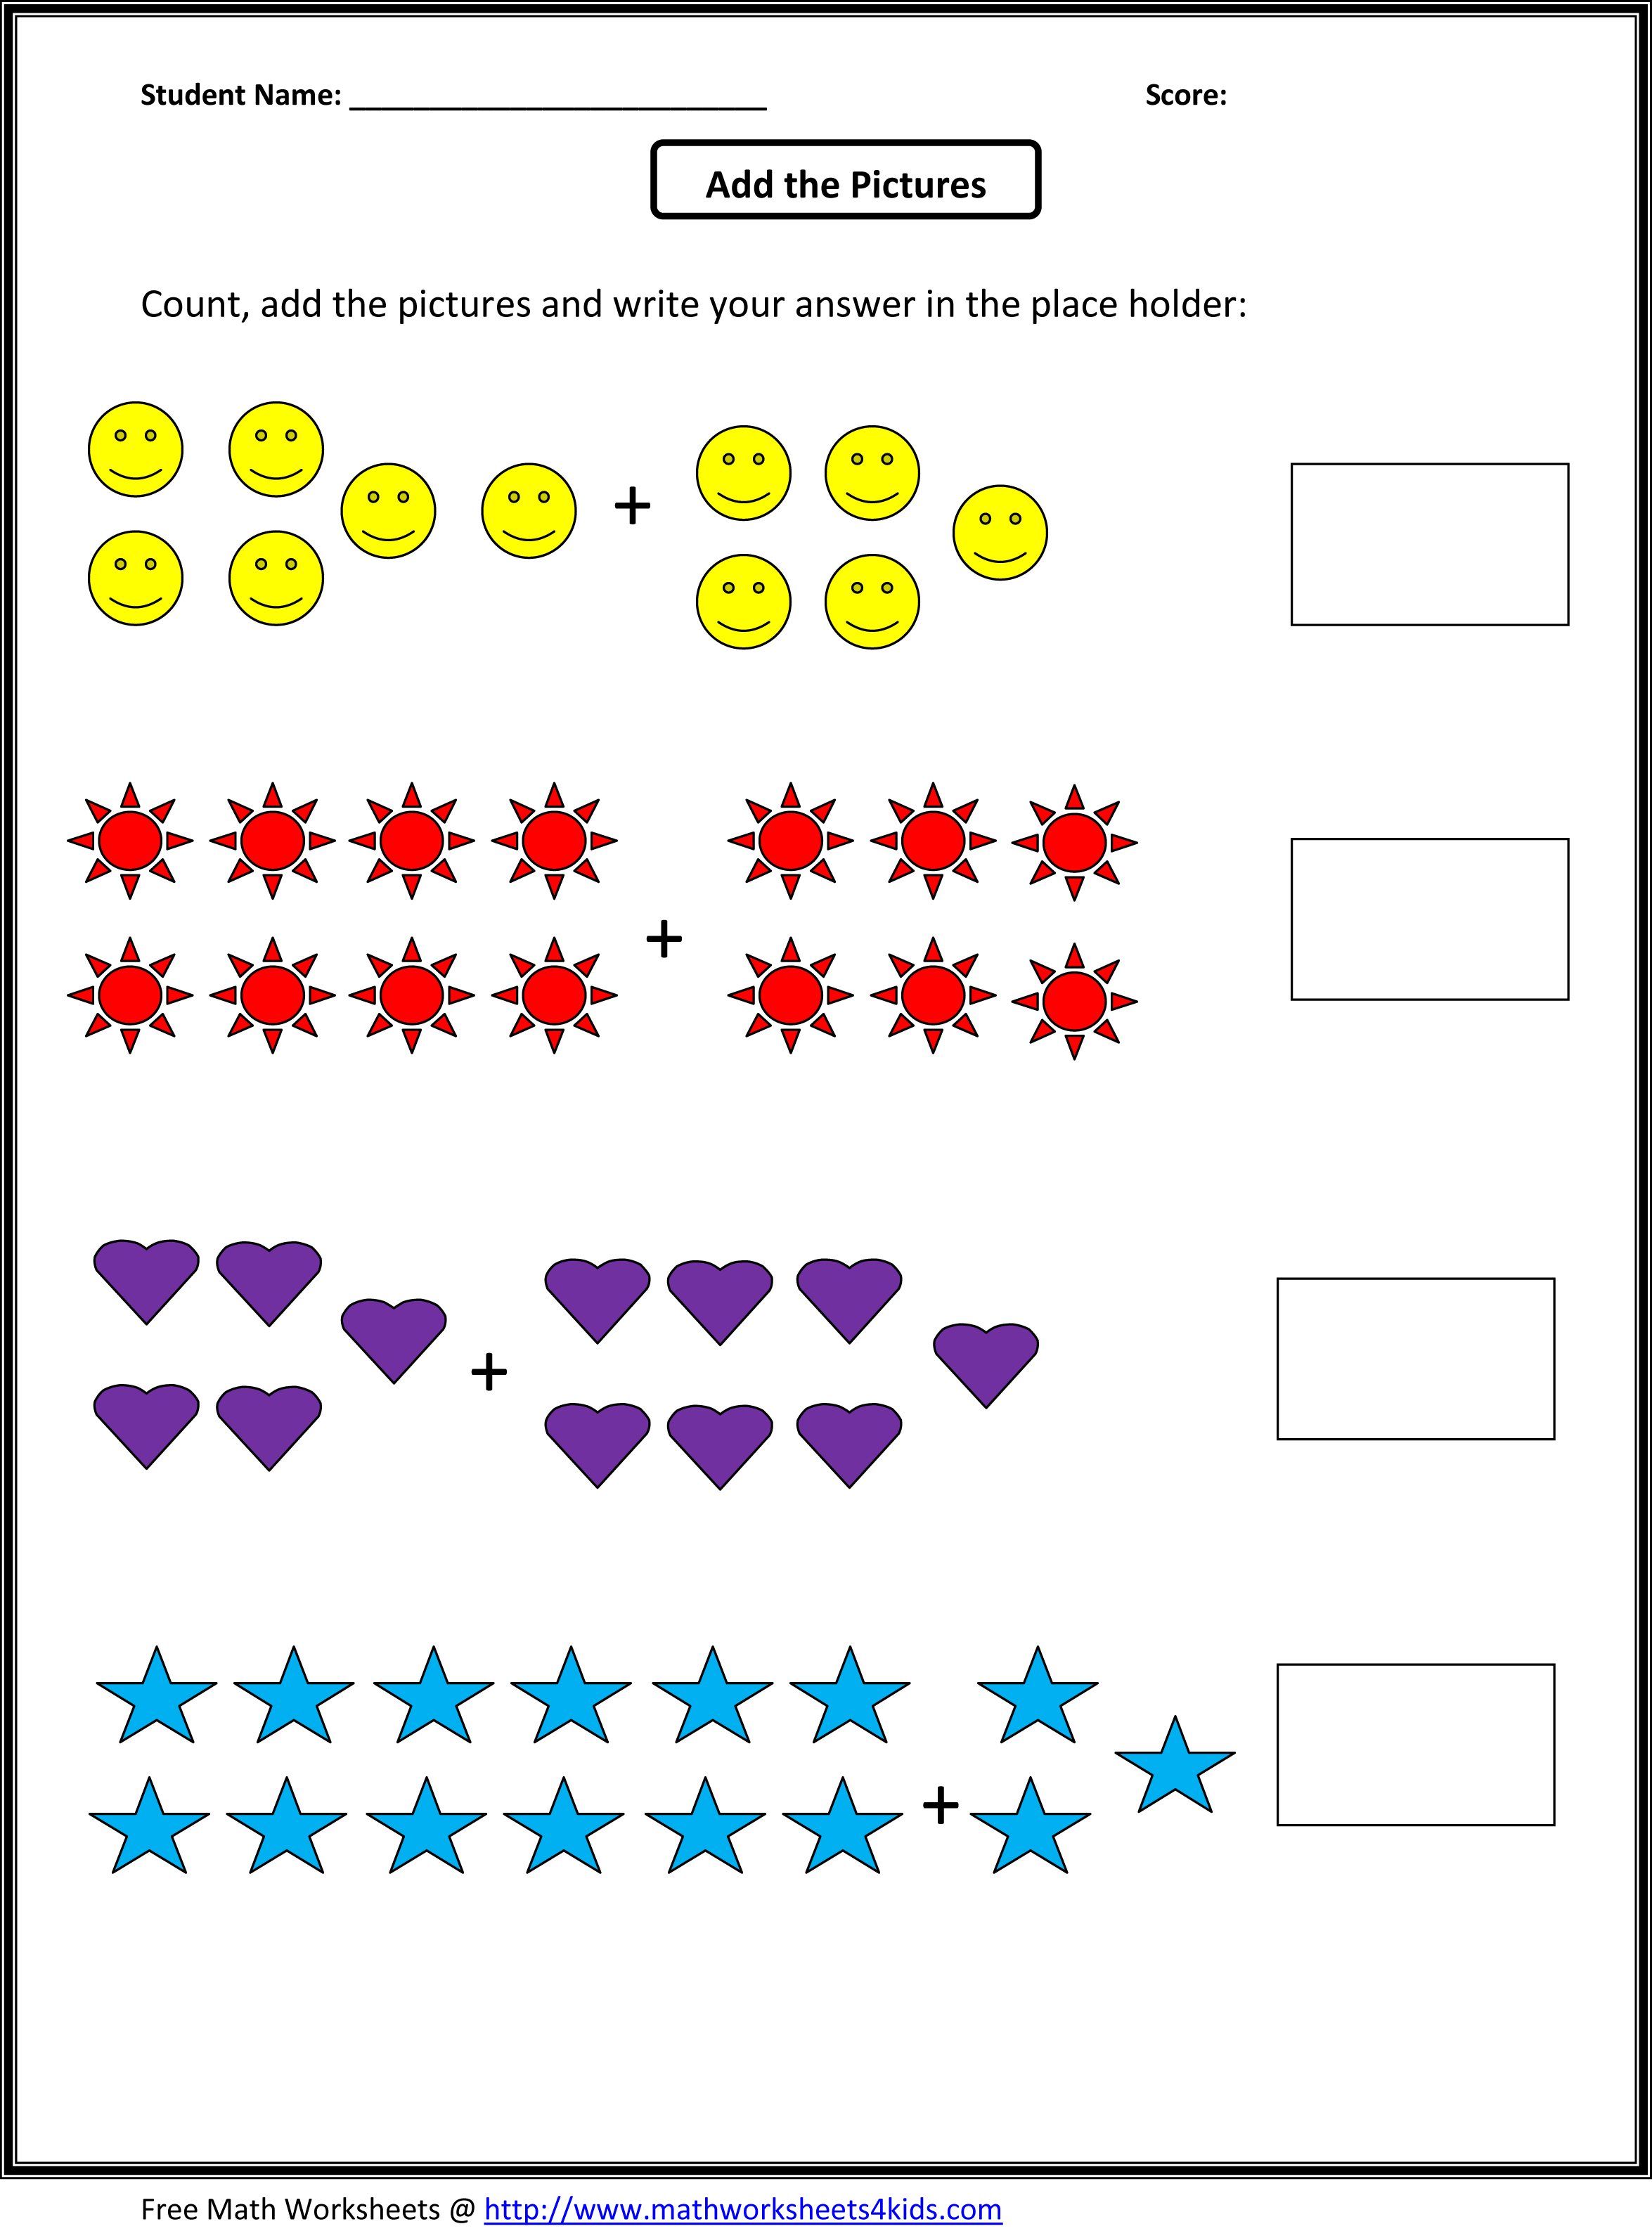 Proatmealus  Mesmerizing Grade  Maths Worksheet  Reocurent With Fetching Math Worksheets For St Grade Free  Reocurent With Delightful Simplifying Imaginary Numbers Worksheet Also Chemical Reaction Types Worksheet In Addition Eftps Worksheet Short Form And Participles Worksheet As Well As Writing Worksheets For Th Grade Additionally Rational Numbers Worksheets From Reocurentcom With Proatmealus  Fetching Grade  Maths Worksheet  Reocurent With Delightful Math Worksheets For St Grade Free  Reocurent And Mesmerizing Simplifying Imaginary Numbers Worksheet Also Chemical Reaction Types Worksheet In Addition Eftps Worksheet Short Form From Reocurentcom